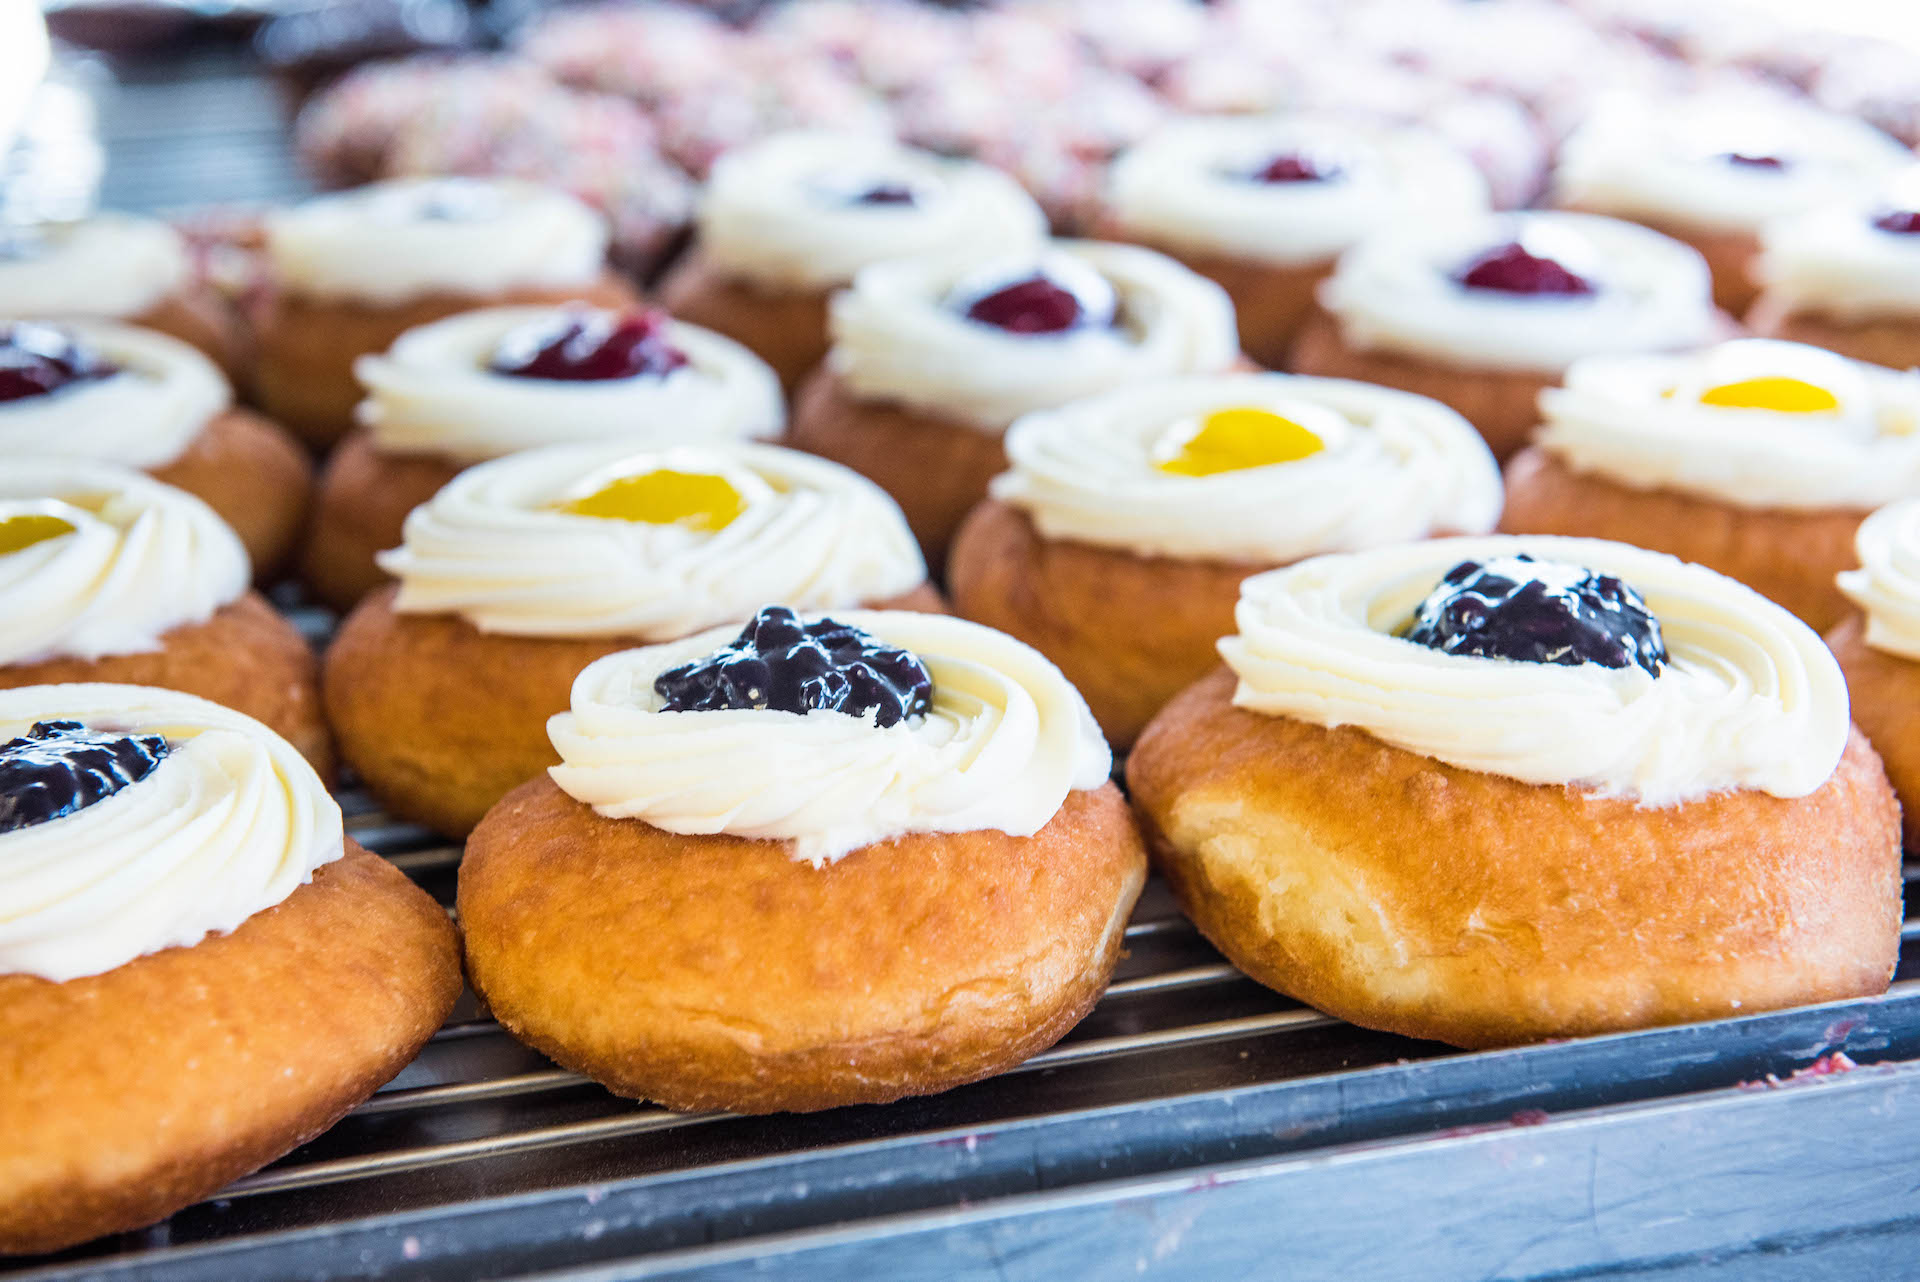 They have a wide variety of donuts aside from the famous fresh strawberry and peach fillings.